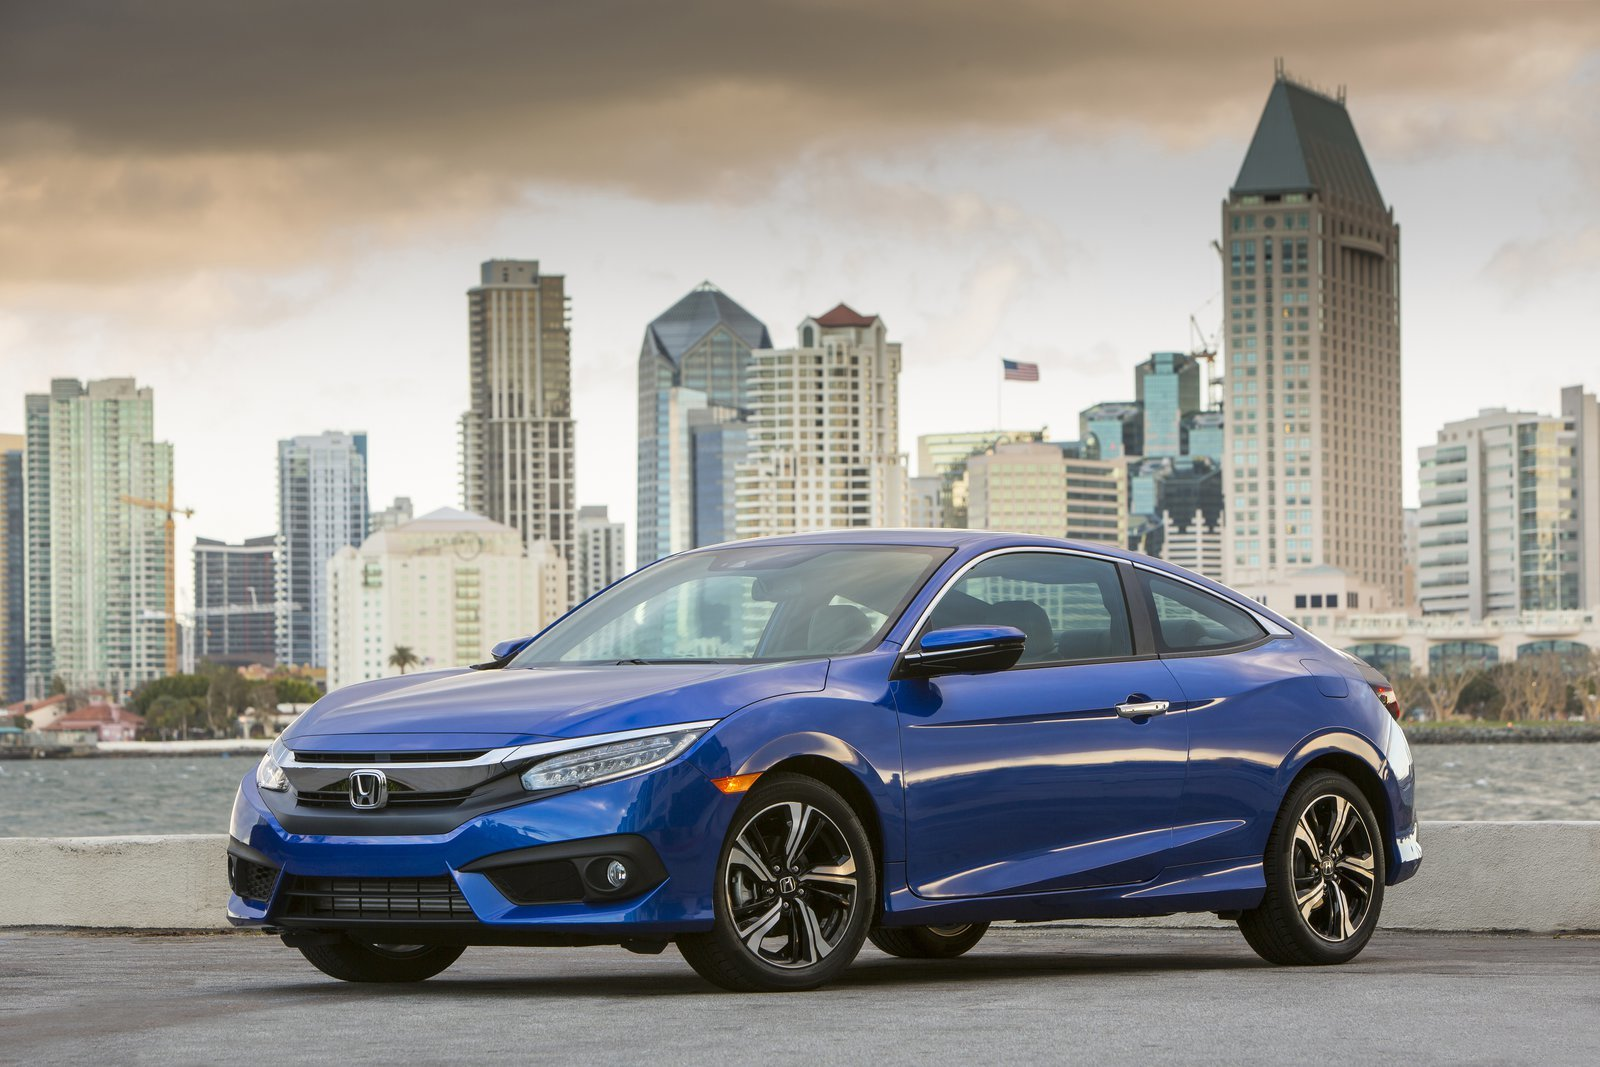 hondacar spicyhondacars block honda feature and dealers site car nsx new cosworth will heads